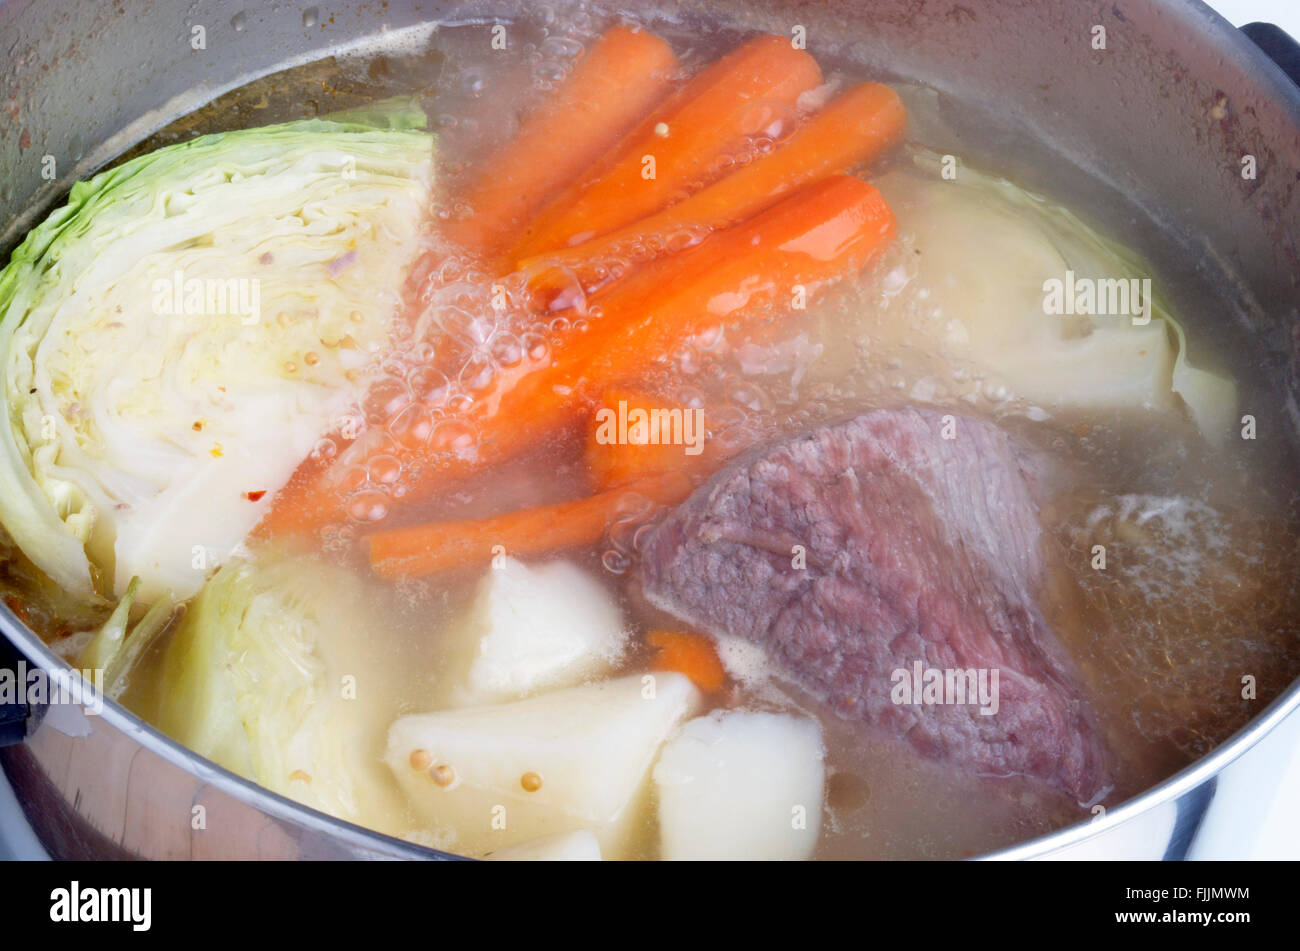 Boiling Corned Beef And Cabbage With Carrots and Potatoes - Stock Image